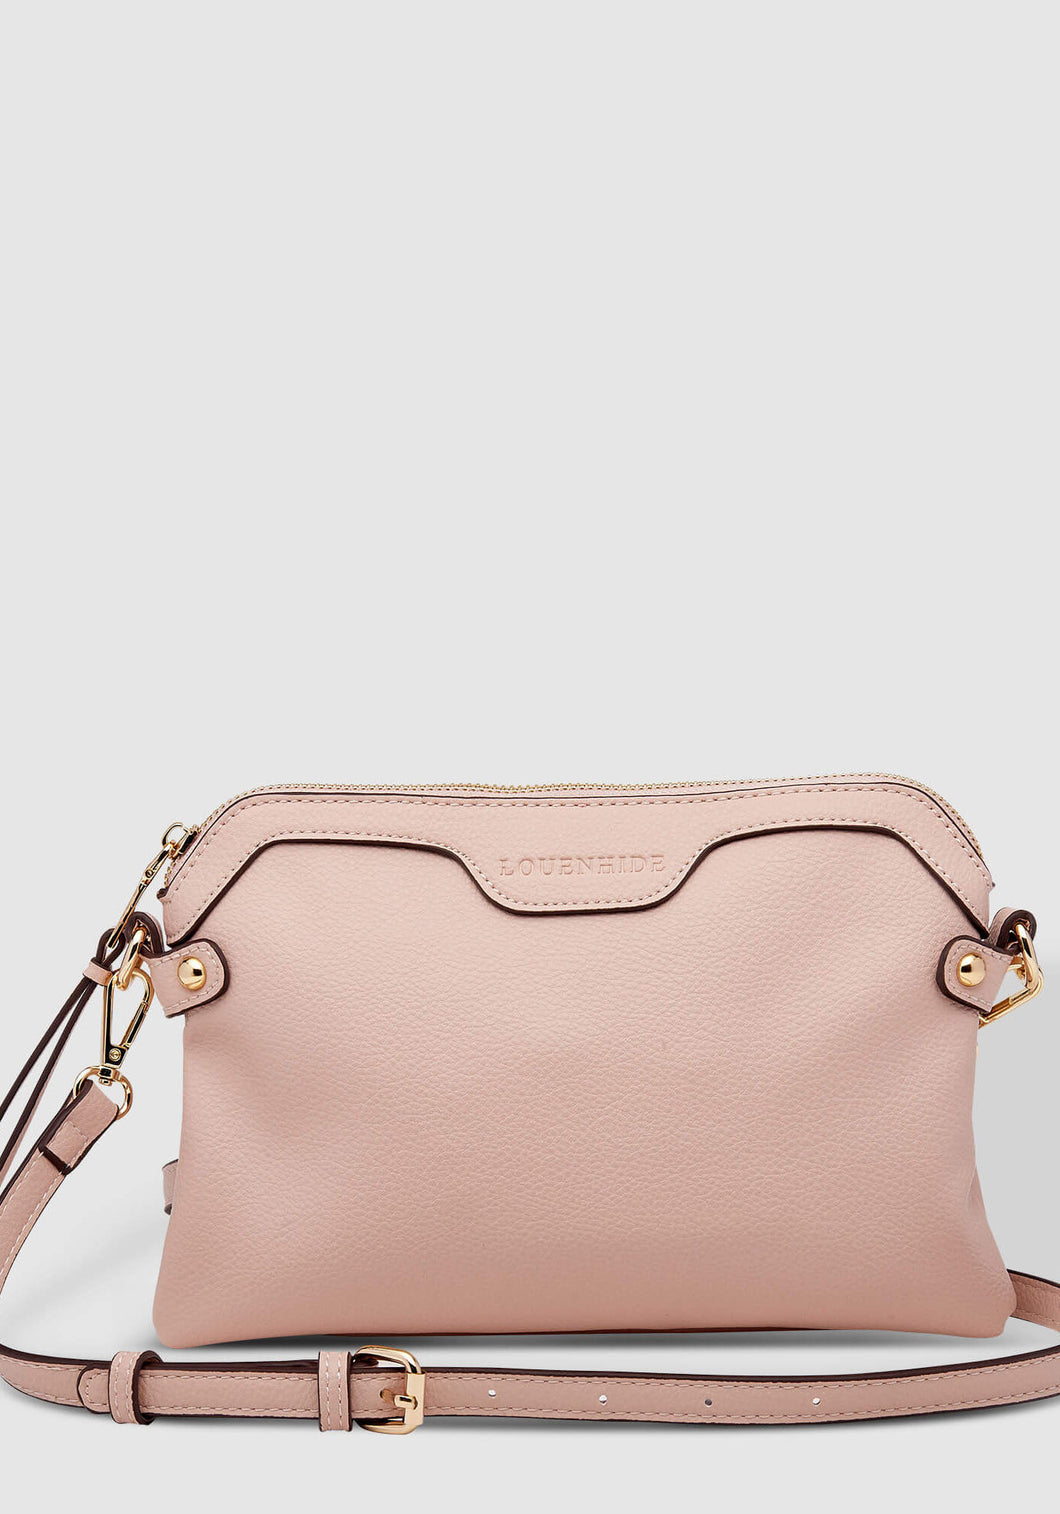 LOUENHIDE ARABELLA PALE PINK CROSSBODY BAG